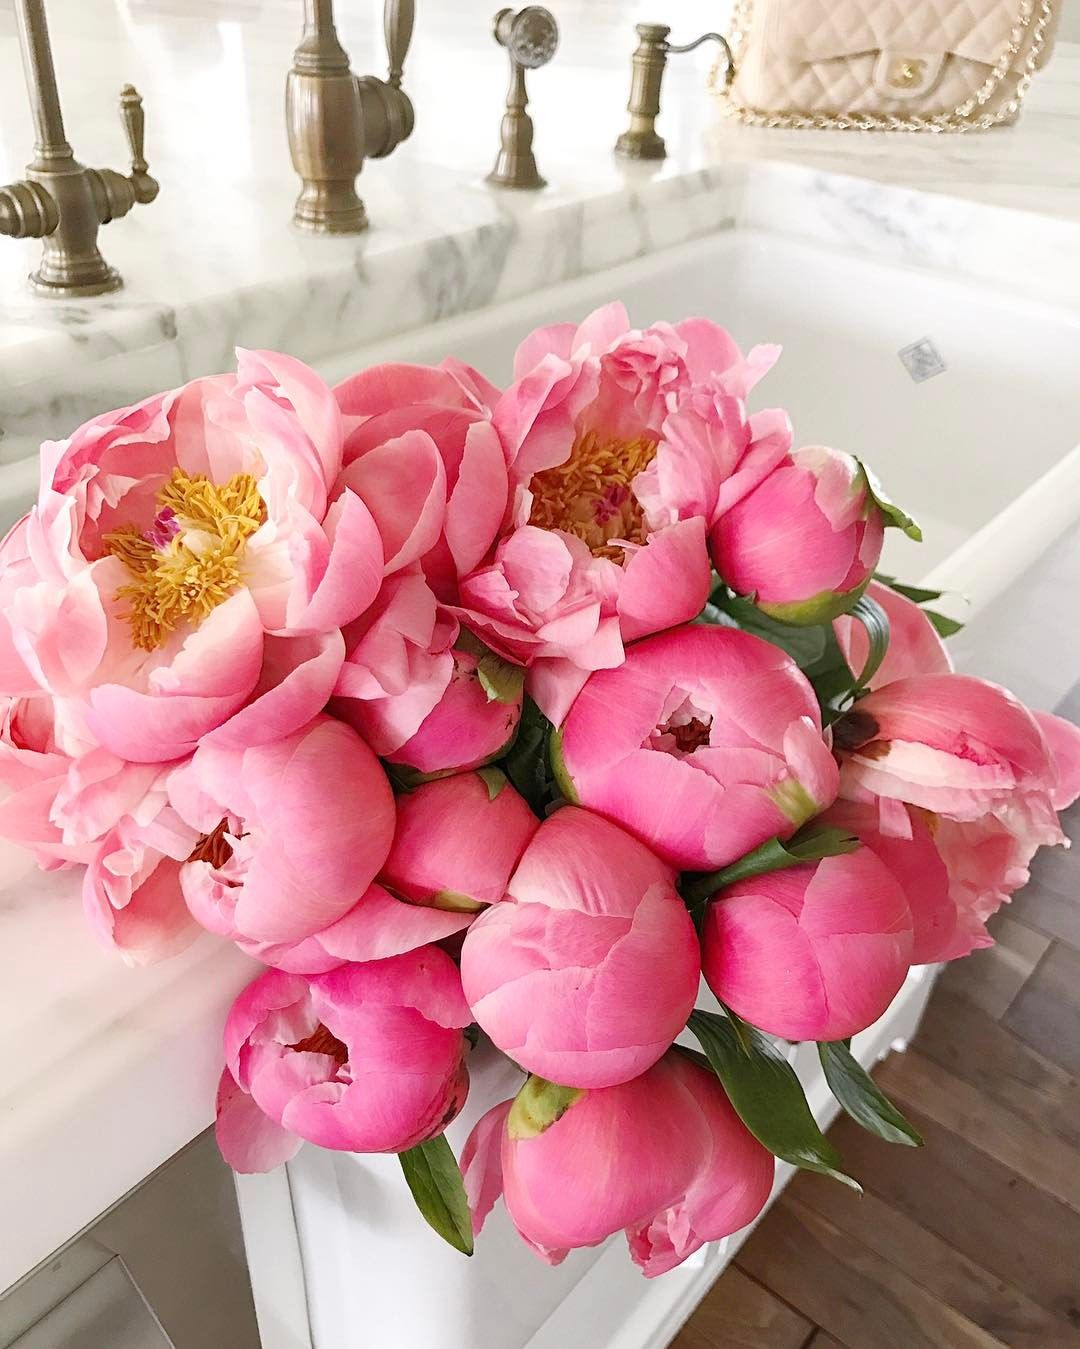 4 927 Likes 67 Comments Rach Parcell Pink Peonies Rachparcell